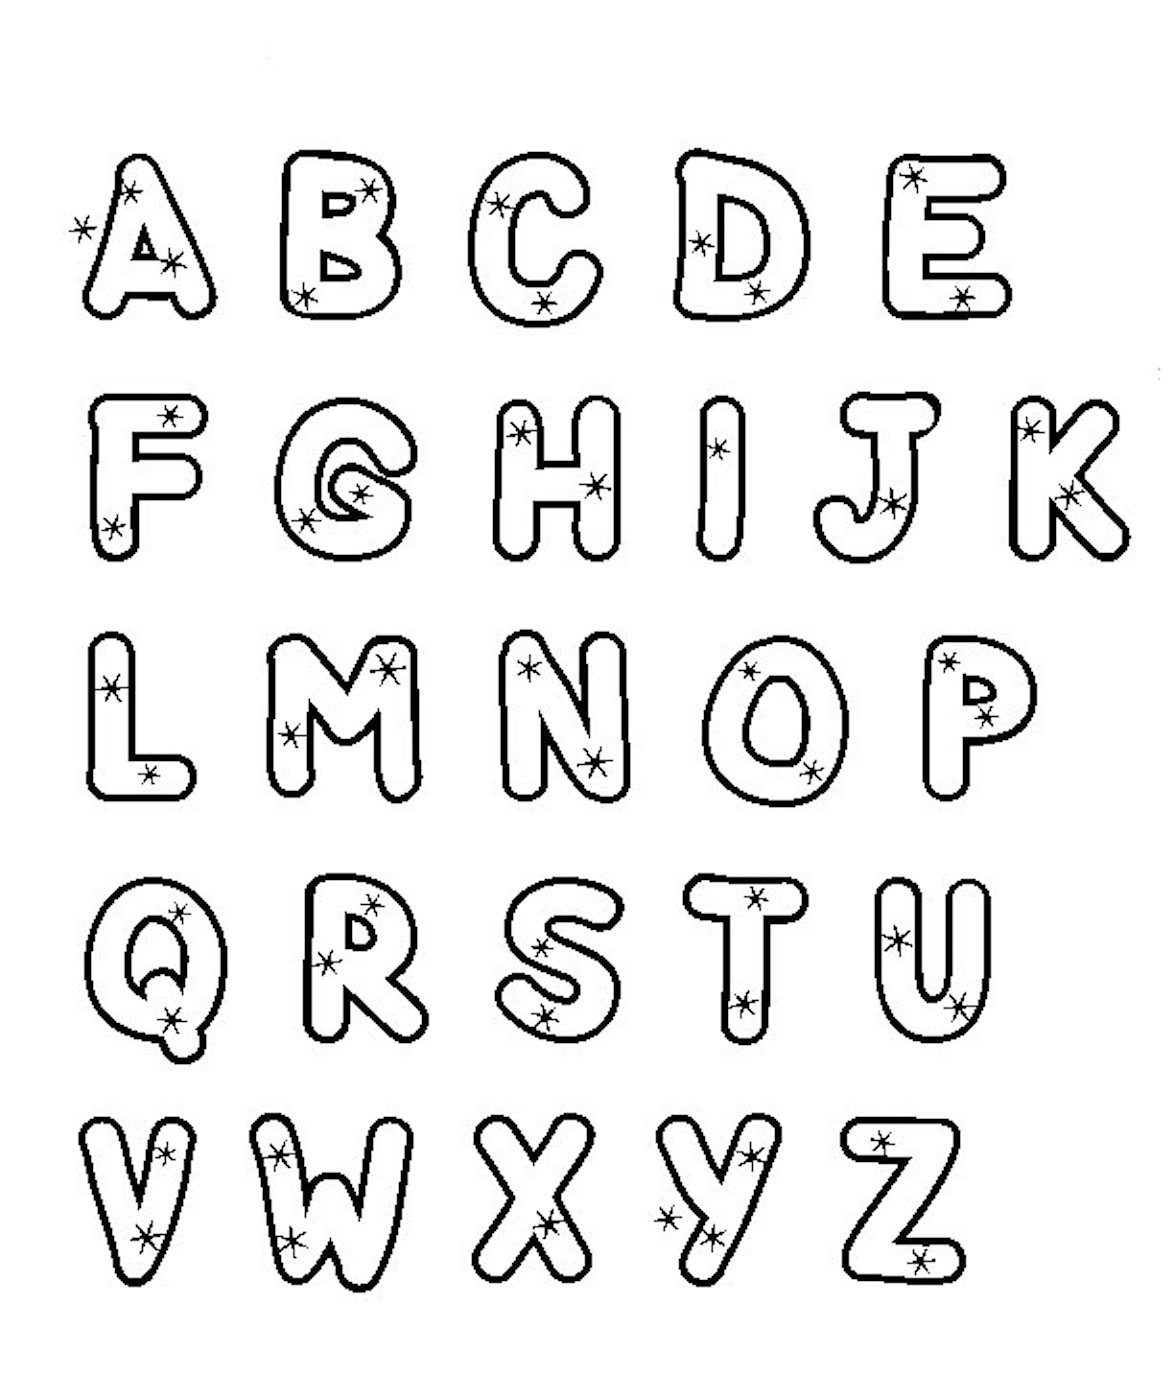 colouring pictures of alphabets alphabet doodle alphabet coloring pages for kids to of colouring pictures alphabets